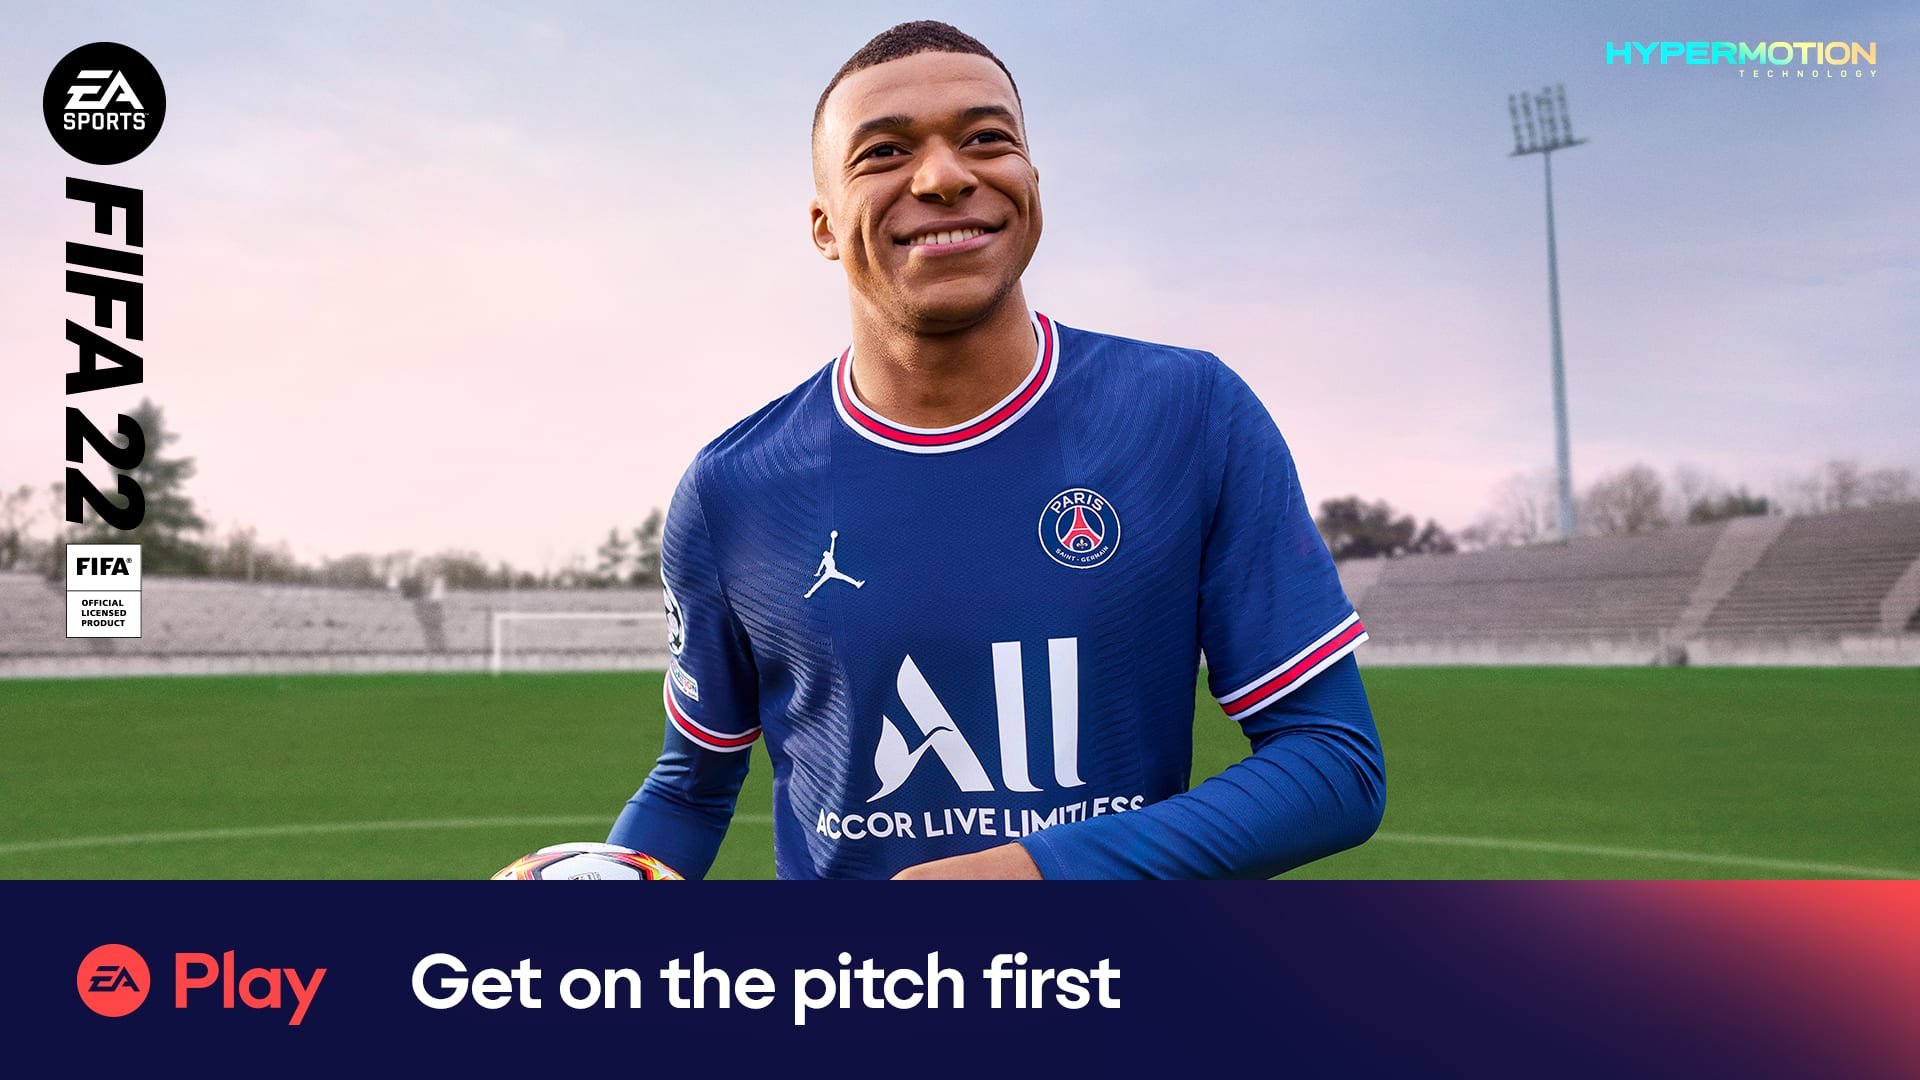 FIFA 22 Gameplay Review: What's New?